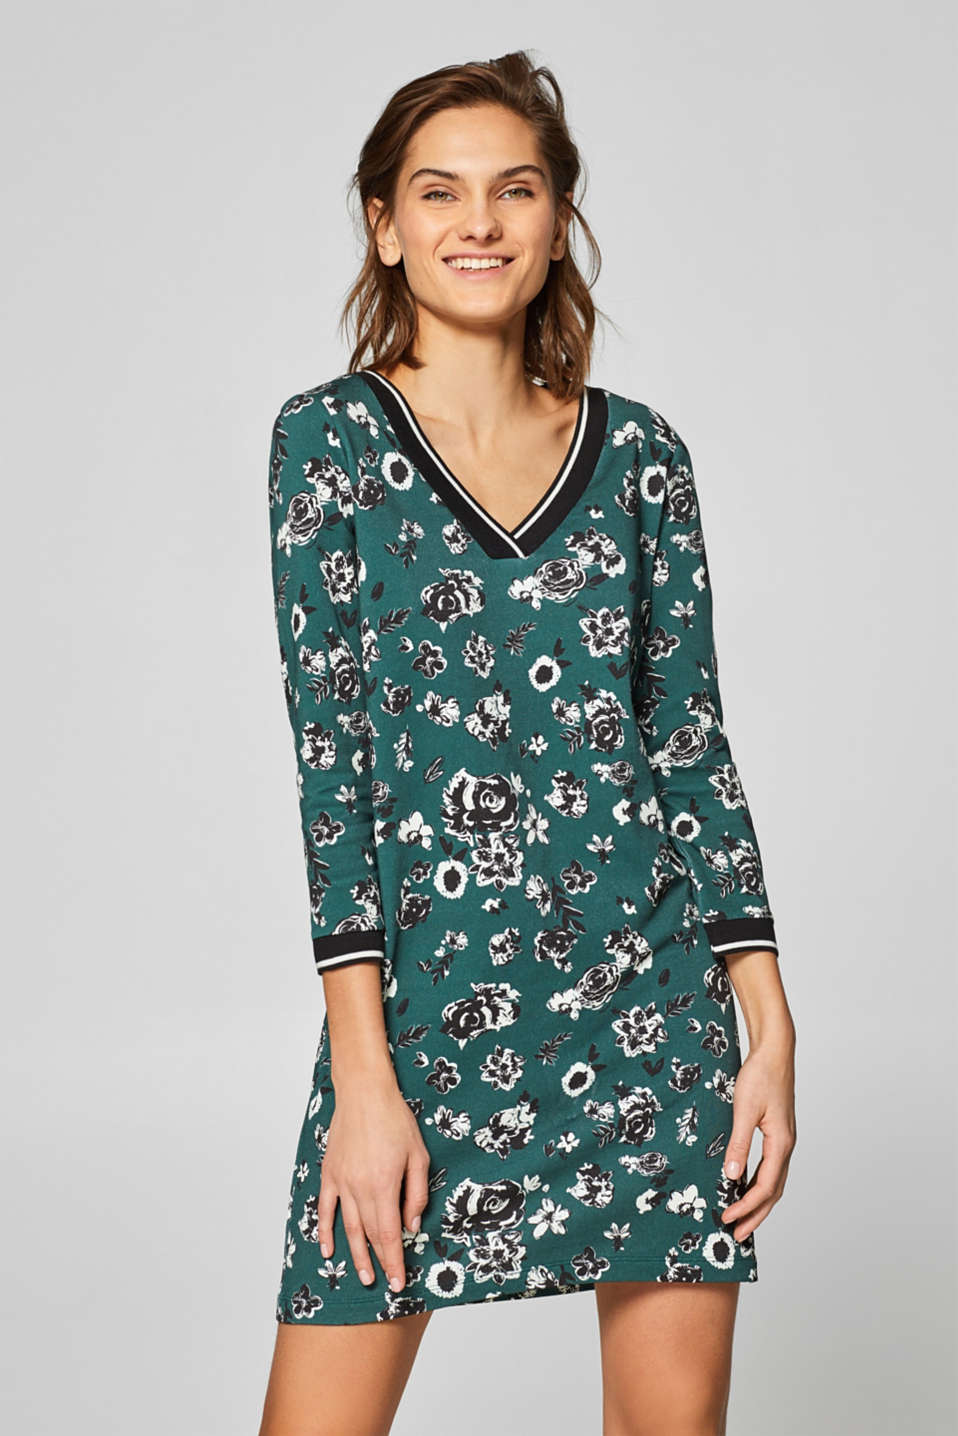 edc - Sweatshirt dress with a floral print, 100% cotton